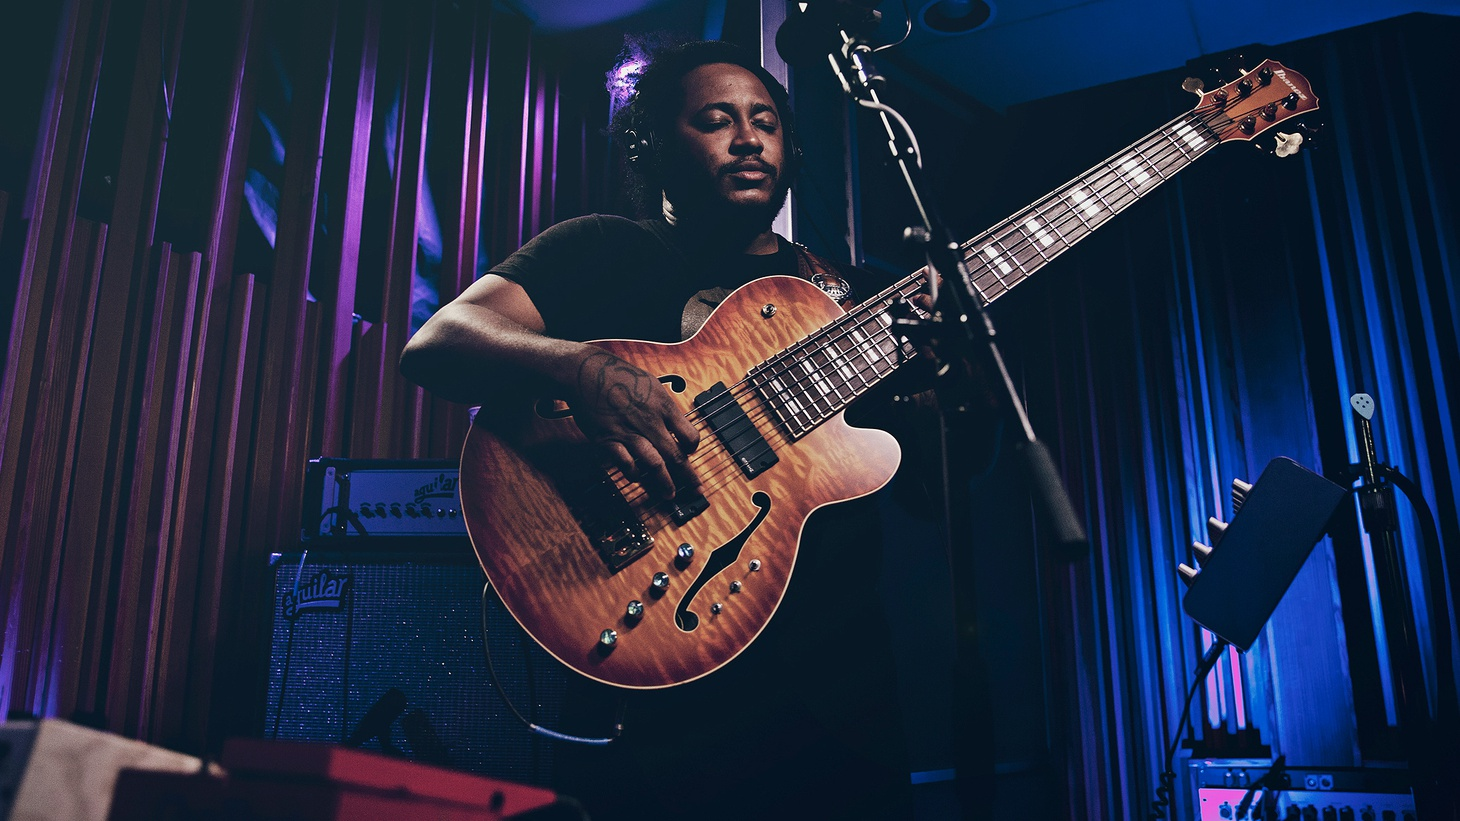 Stephen Bruner -- aka Thundercat -- is a master bass player and frequent collaborator of fellow LA natives Flying Lotus and Kendrick Lamar.